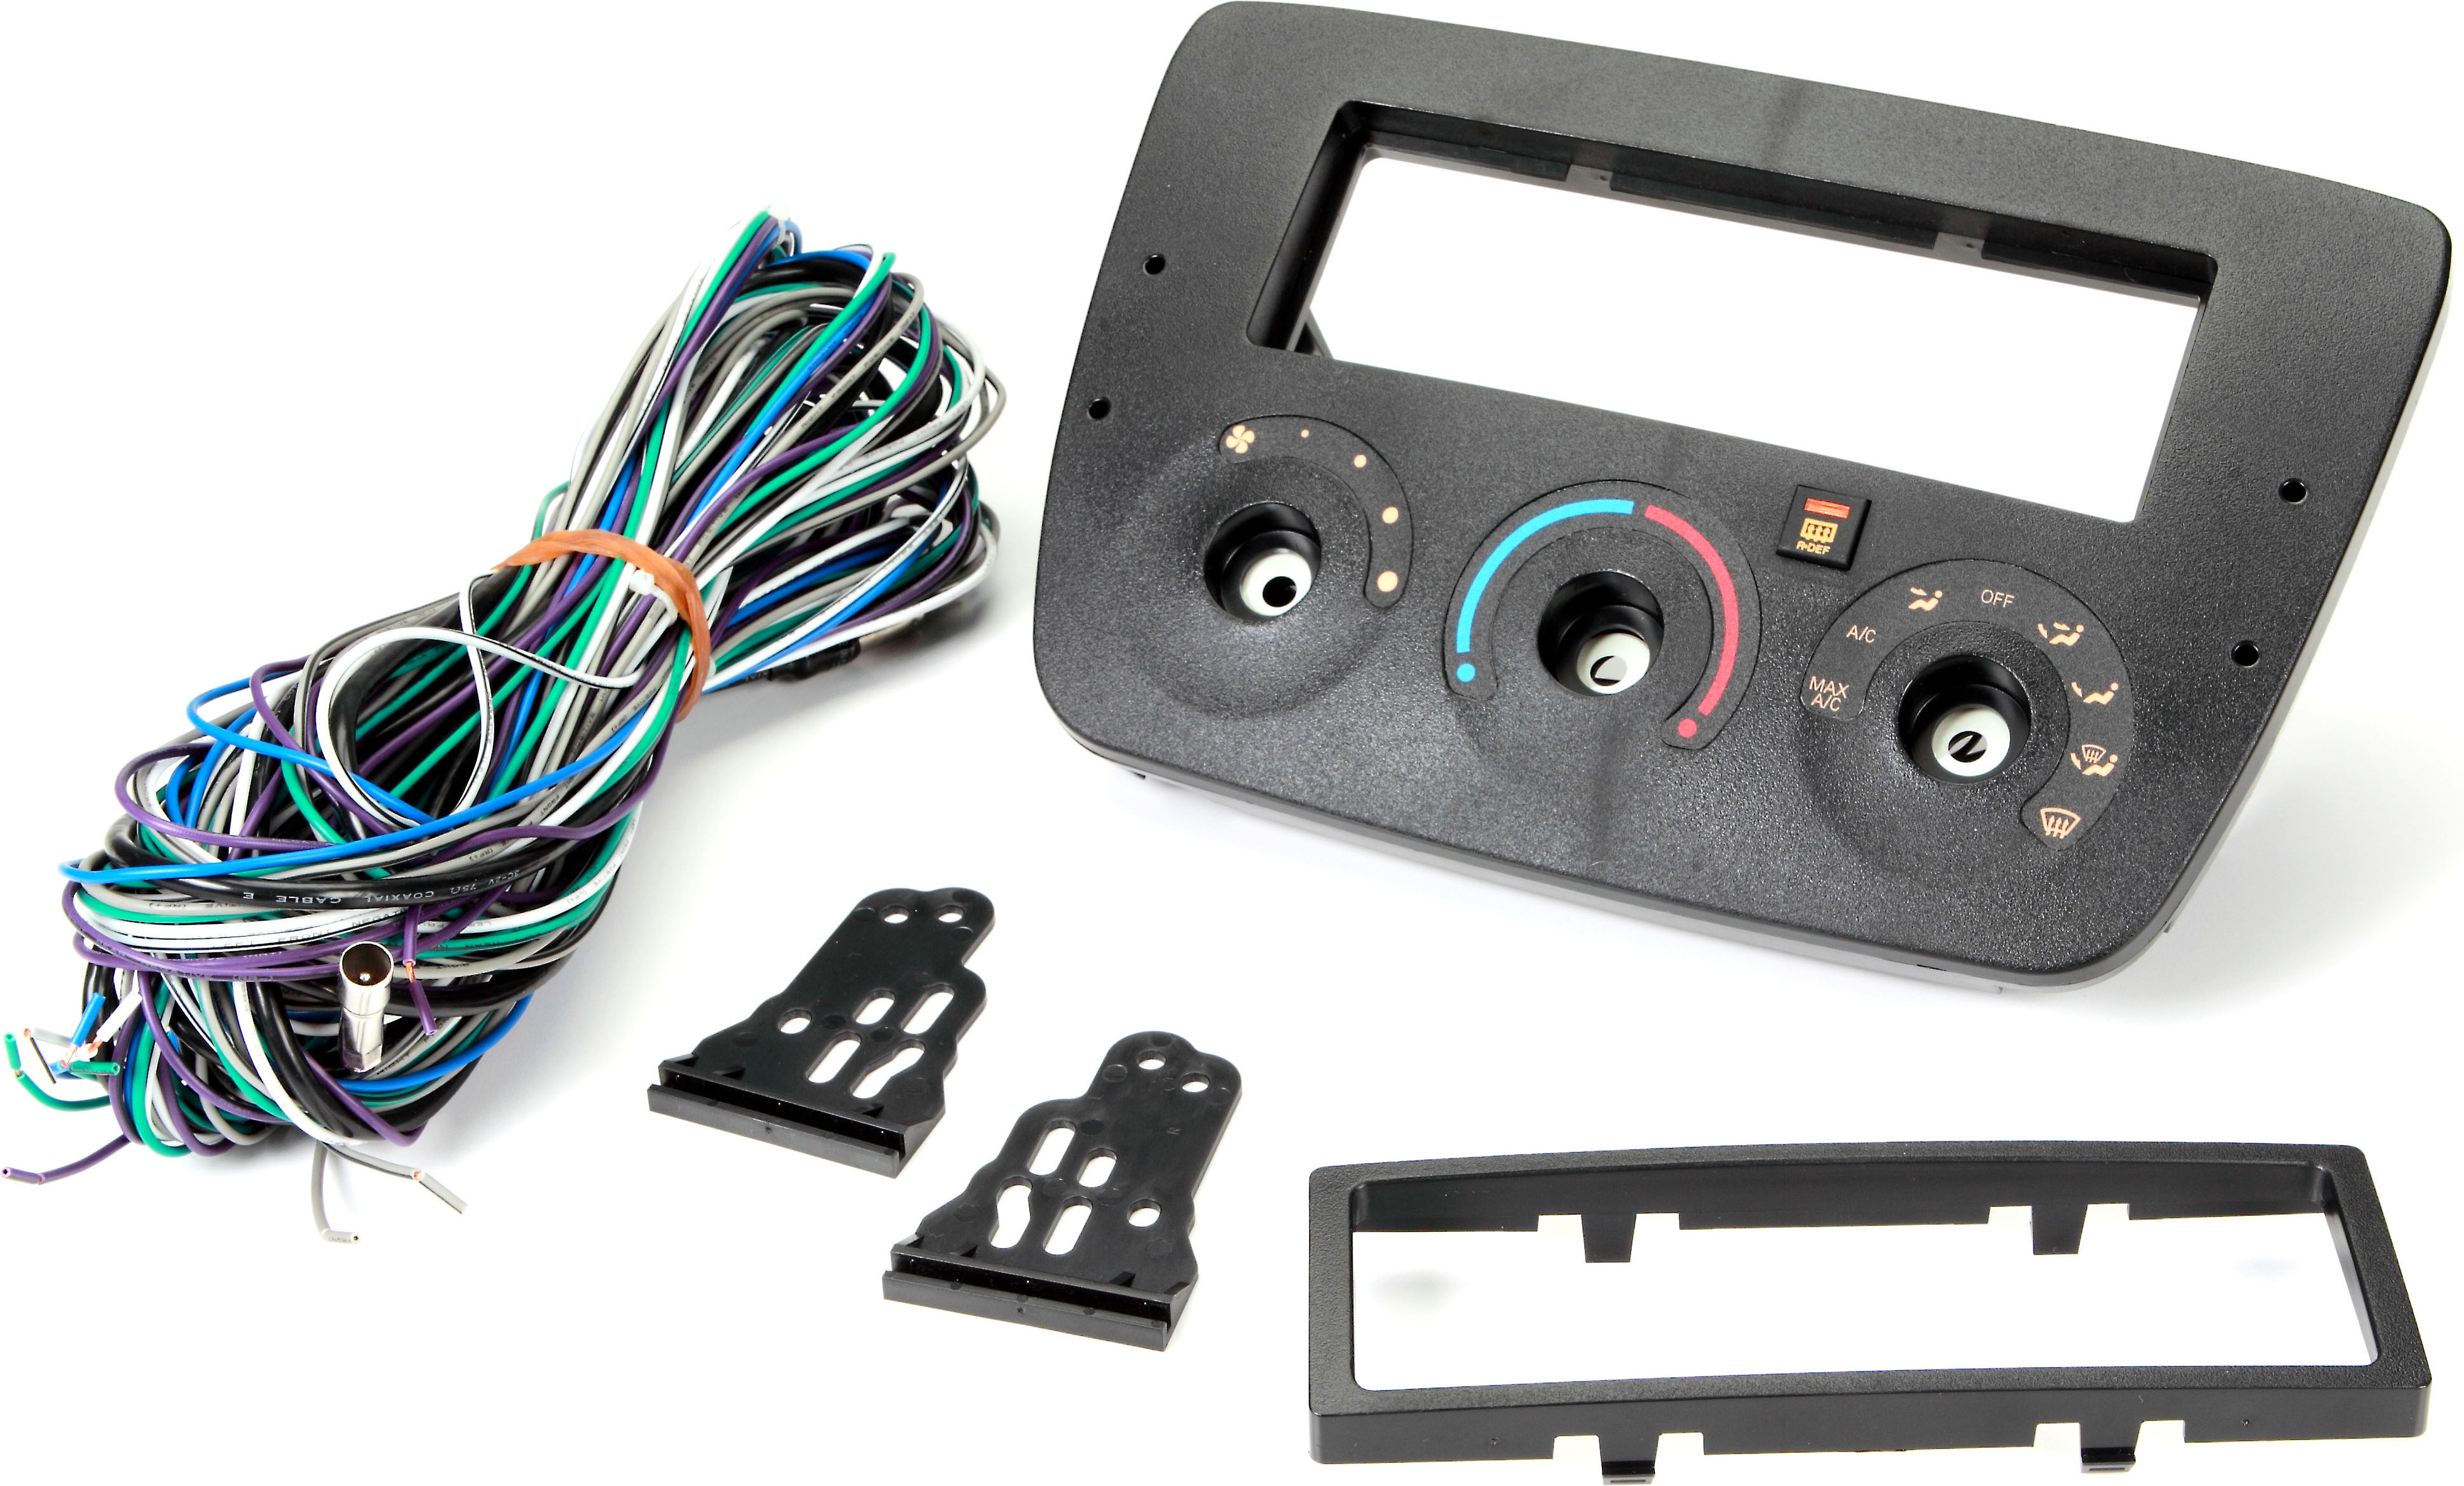 Metra 99-5716 Dash and Wiring Kit Install and connect a single-DIN on geo tracker wiring harness, mazda rx7 wiring harness, ford contour parts diagram, chevy aveo wiring harness, lincoln ls wiring harness, saab 900 wiring harness, ford contour throttle body, pontiac grand am wiring harness, datsun 510 wiring harness, mercury sable wiring harness, audi a4 wiring harness, chevy nova wiring harness, ford contour aftermarket headlights, ford contour relay wiring, chevy cobalt wiring harness, ford contour ignition coil, geo metro wiring harness, ford contour throttle position sensor, jeep grand wagoneer wiring harness, ford contour fuse box,